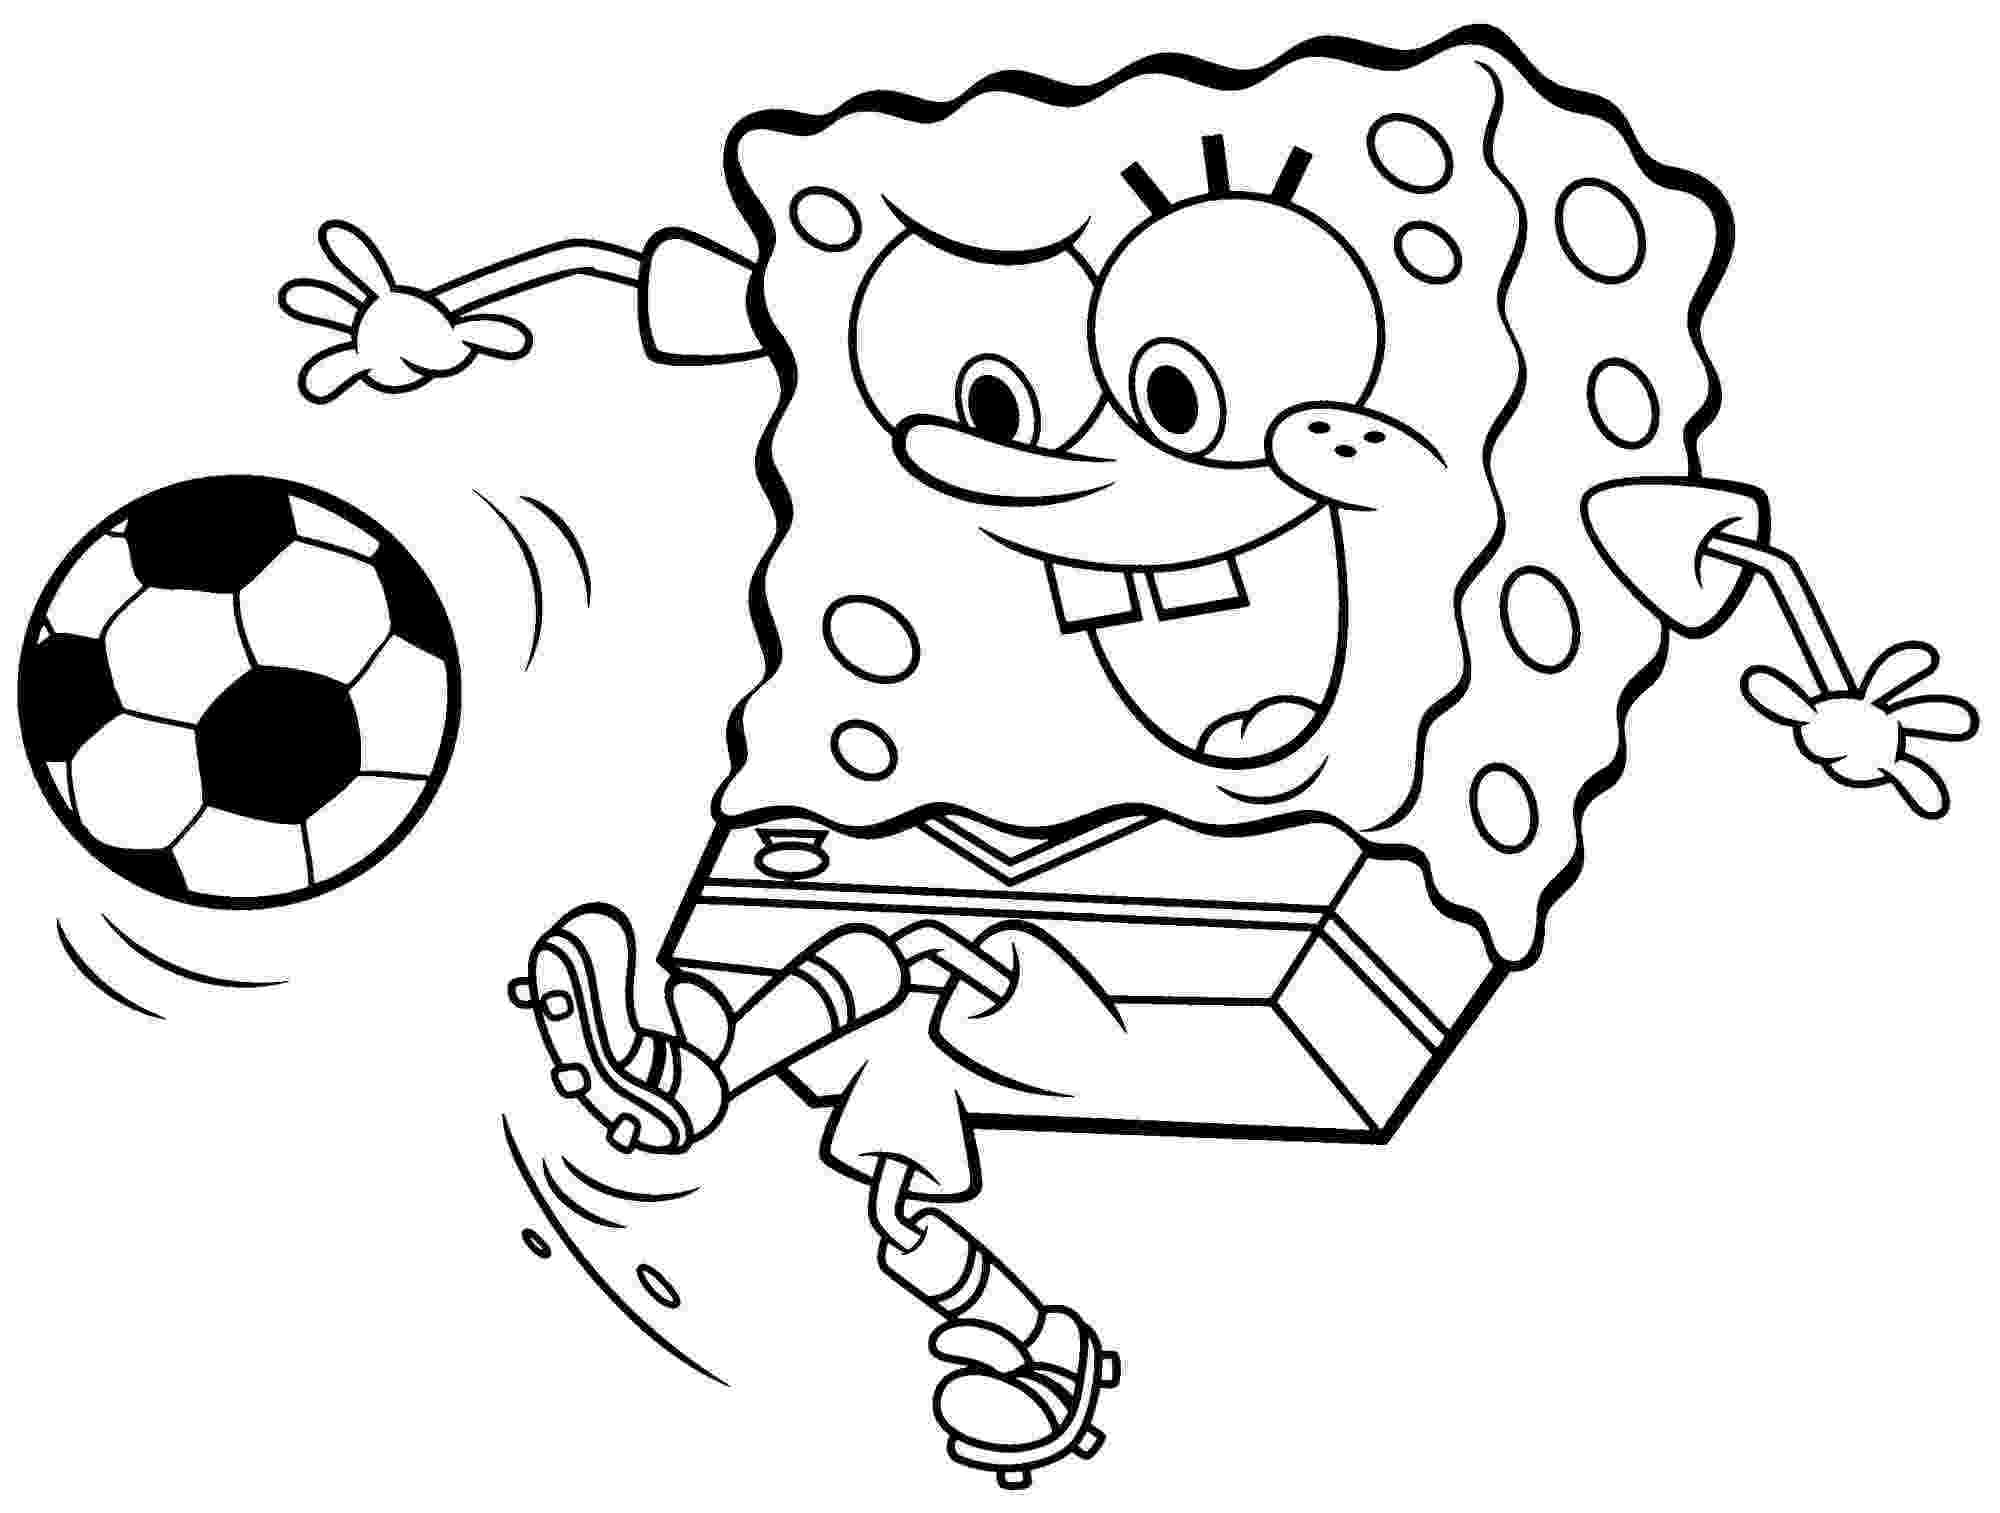 free coloring pages spongebob coloring pages from spongebob squarepants animated coloring free pages spongebob